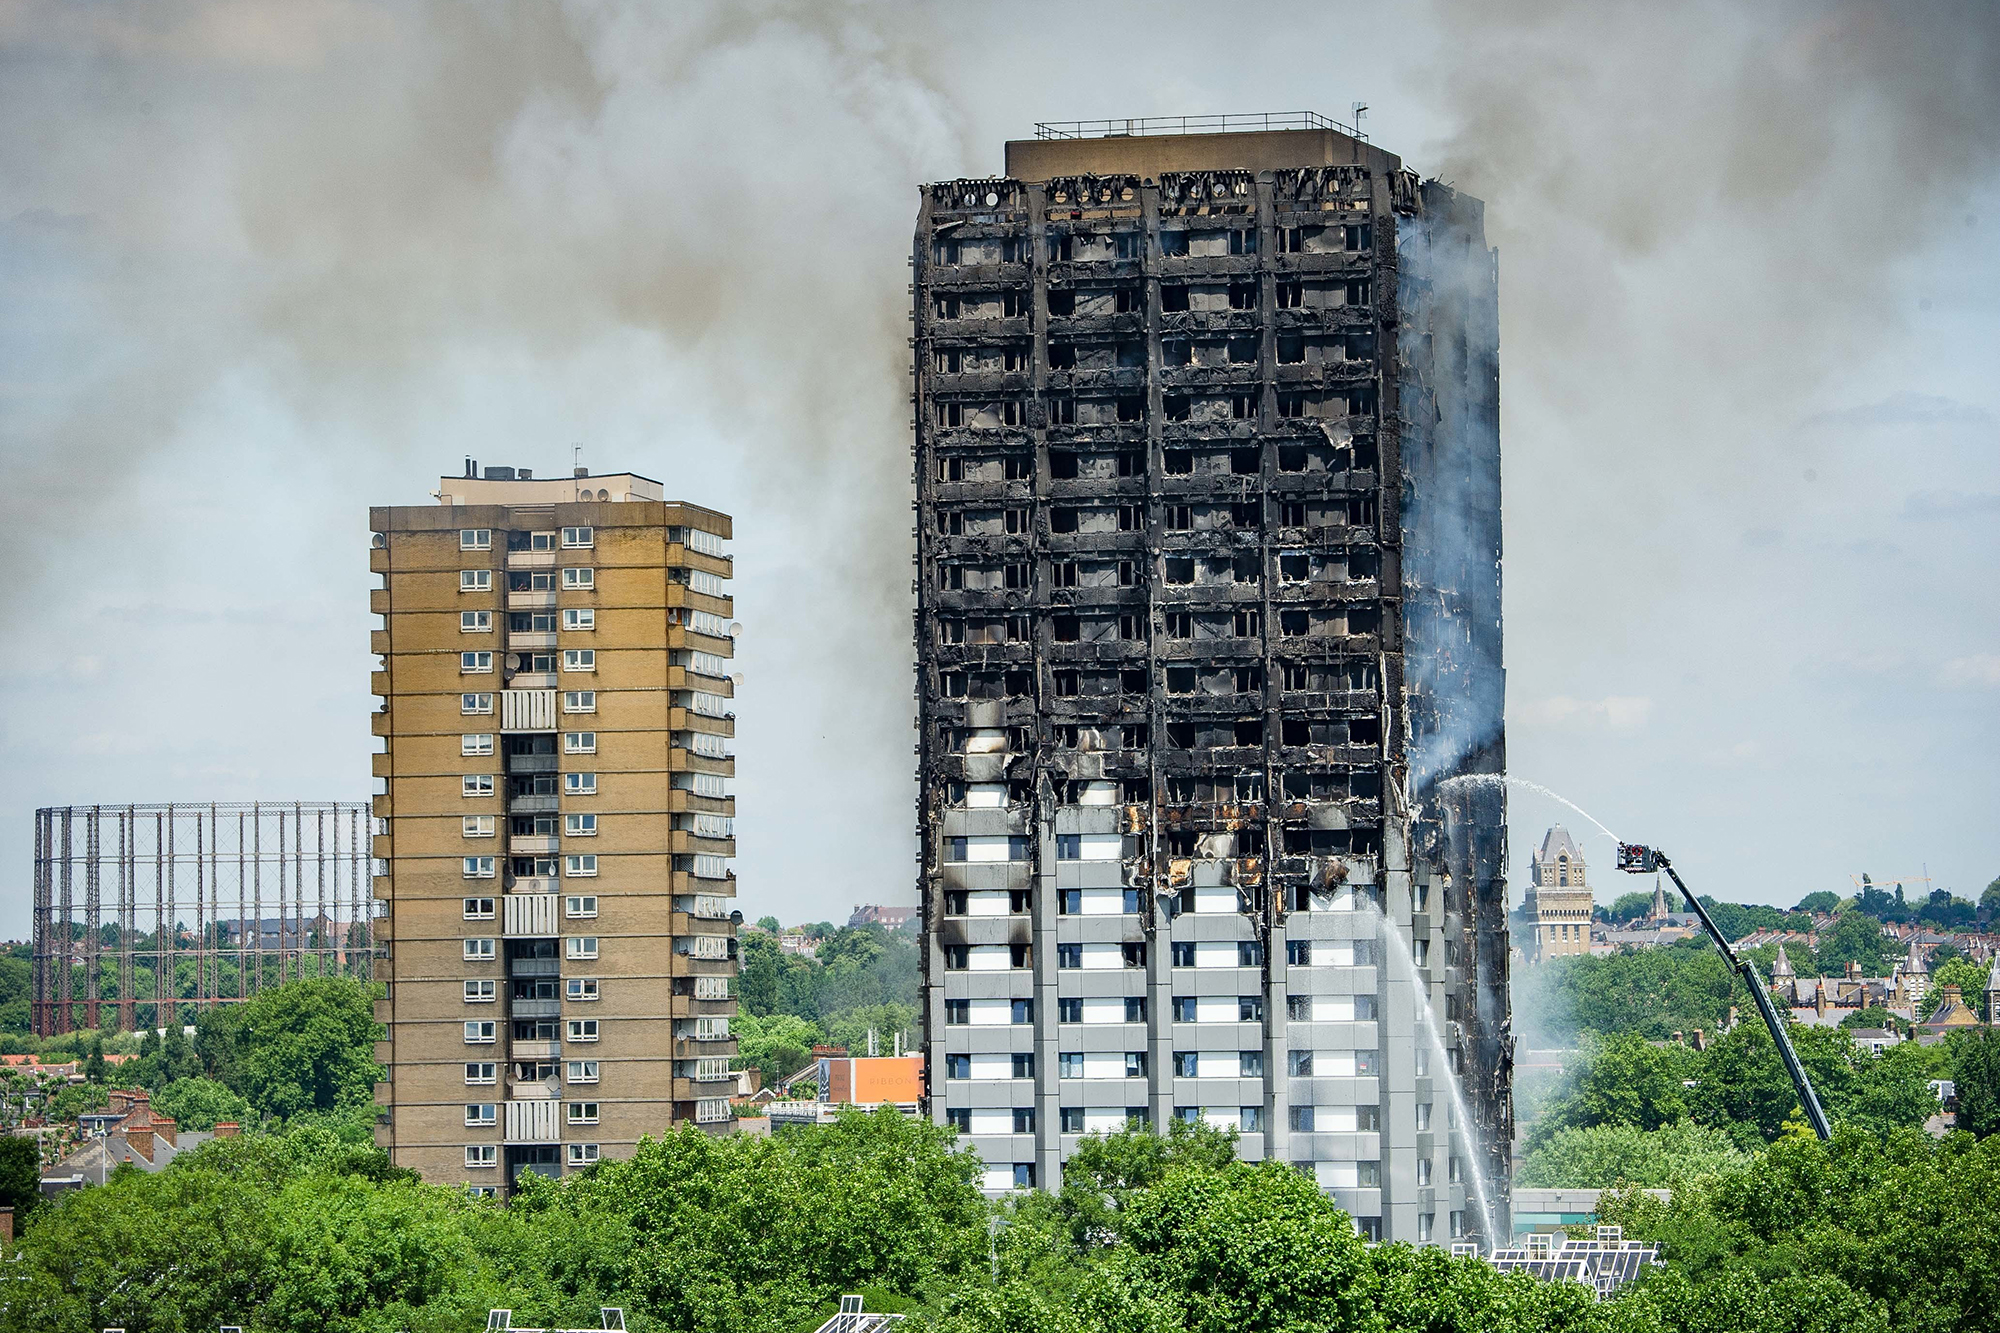 24 Story Residential Grenfell Tower In London Catches Fire